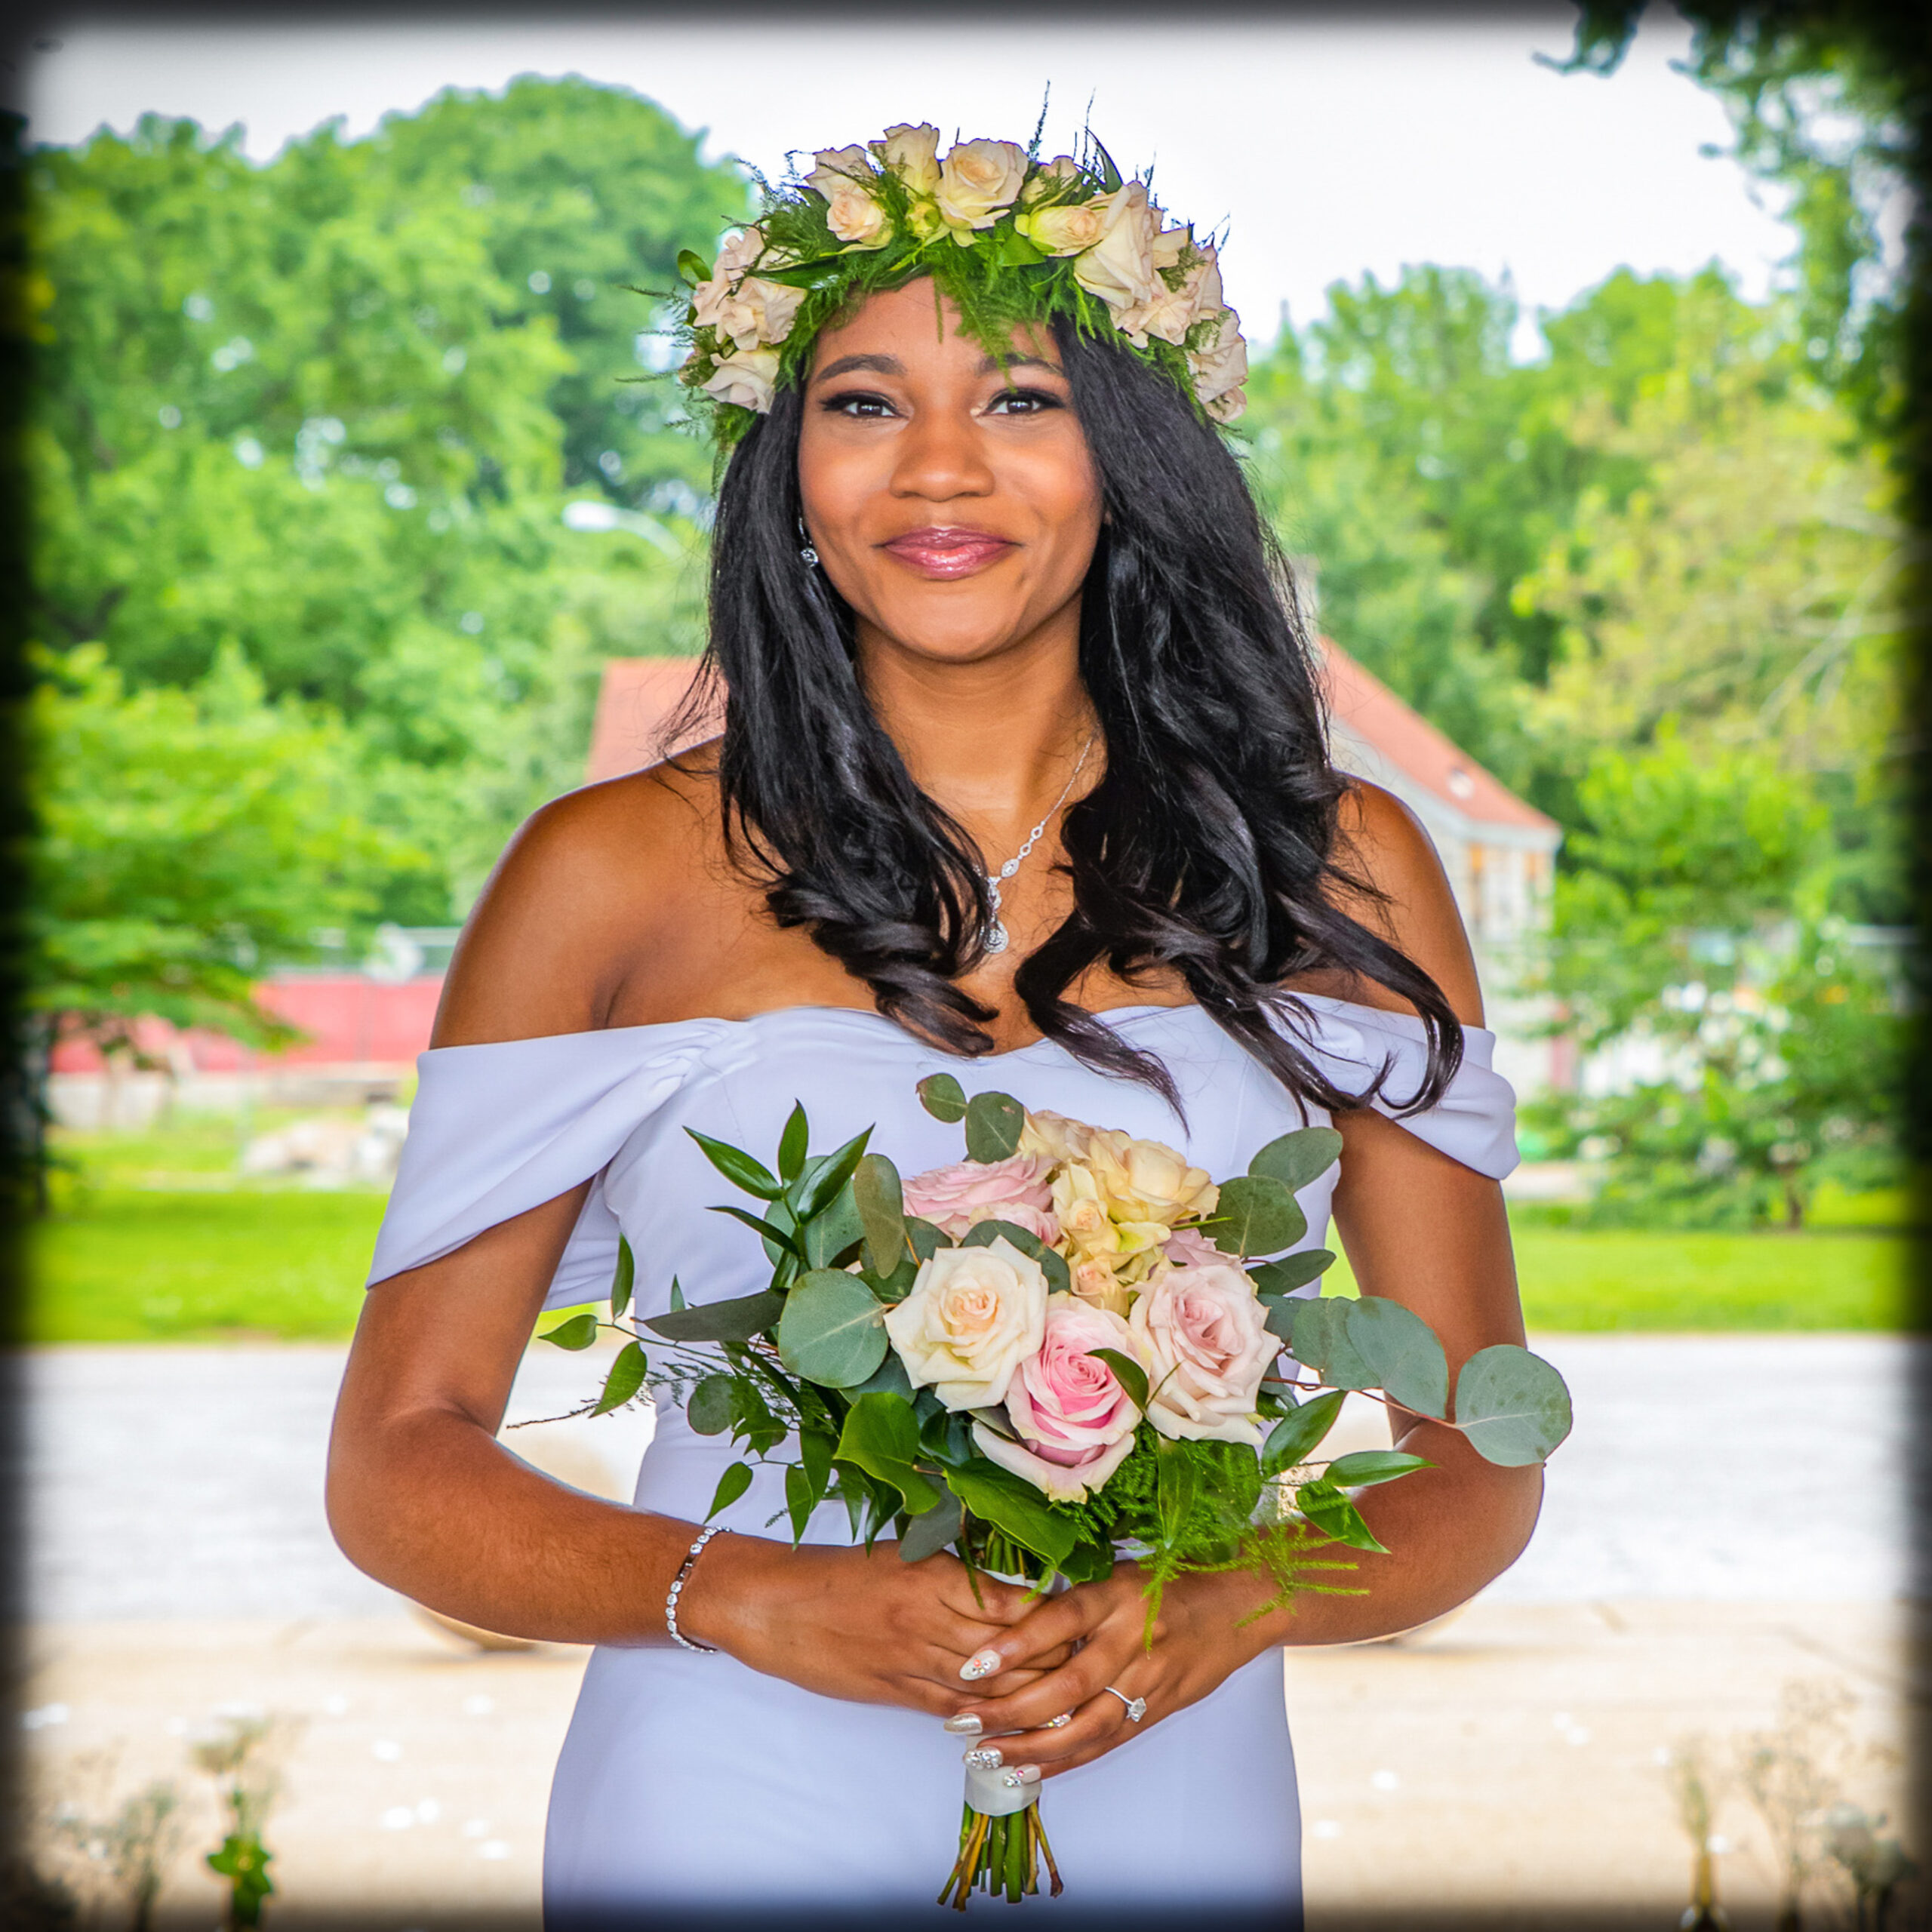 Greater-St-Louis-area-Wedding-Photographers-image-03-3